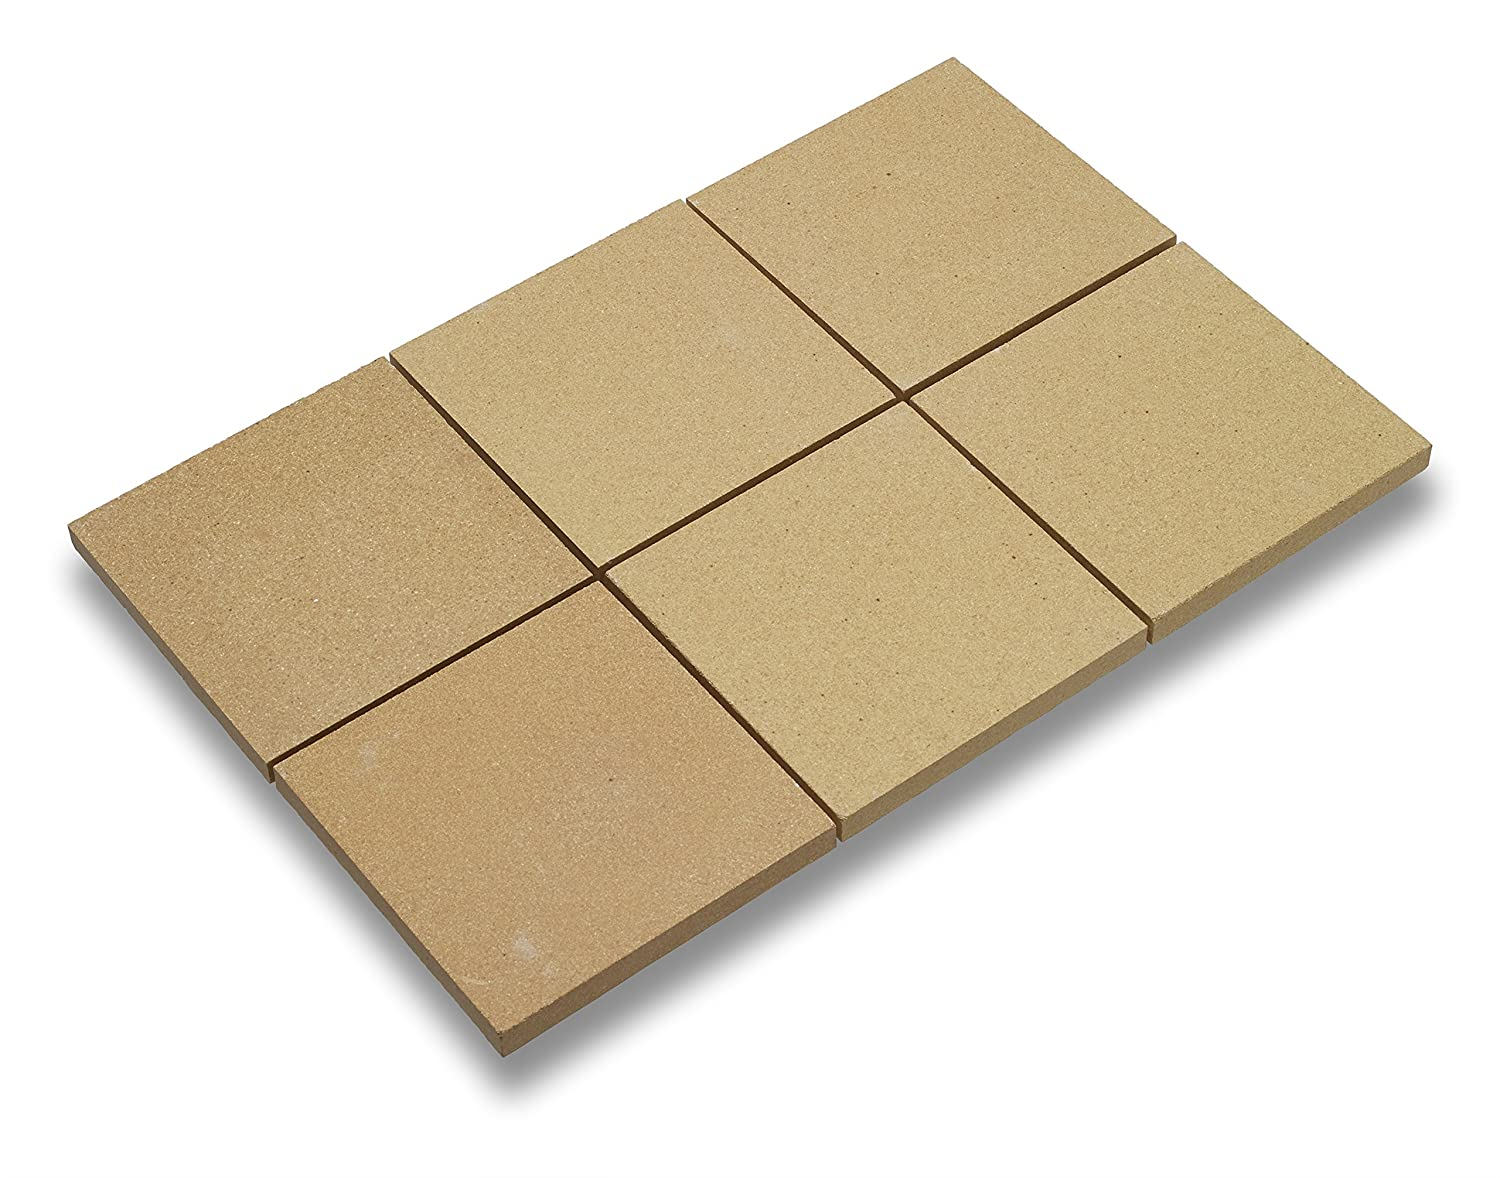 "Kitchen Supply Company Kitchen Supply 4448 Old Stone Oven Baking Tiles, 6"" x 6-I Nches, Set of 6, Brown"